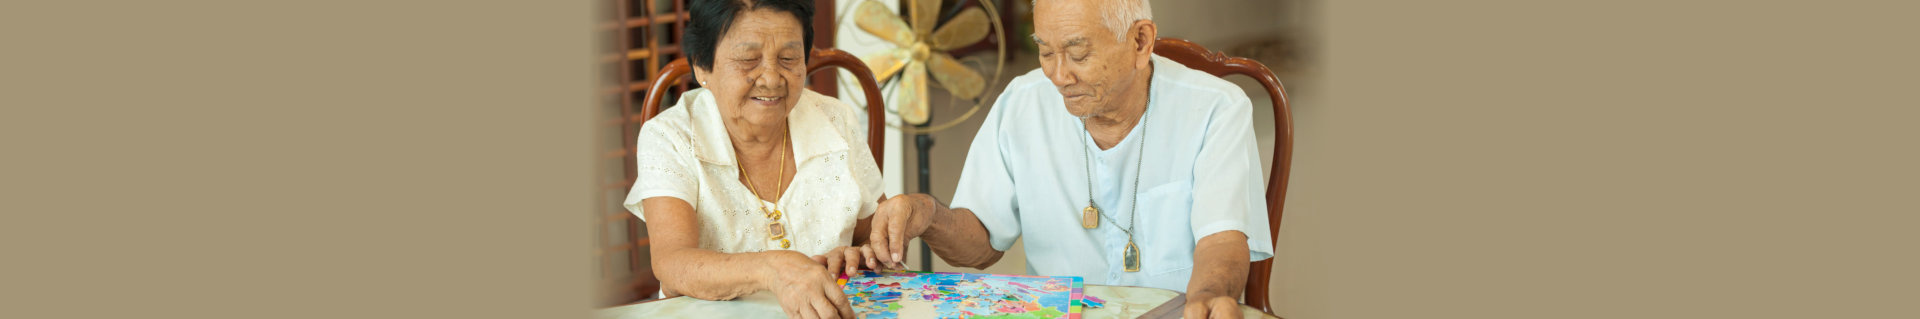 seniors playing puzzle